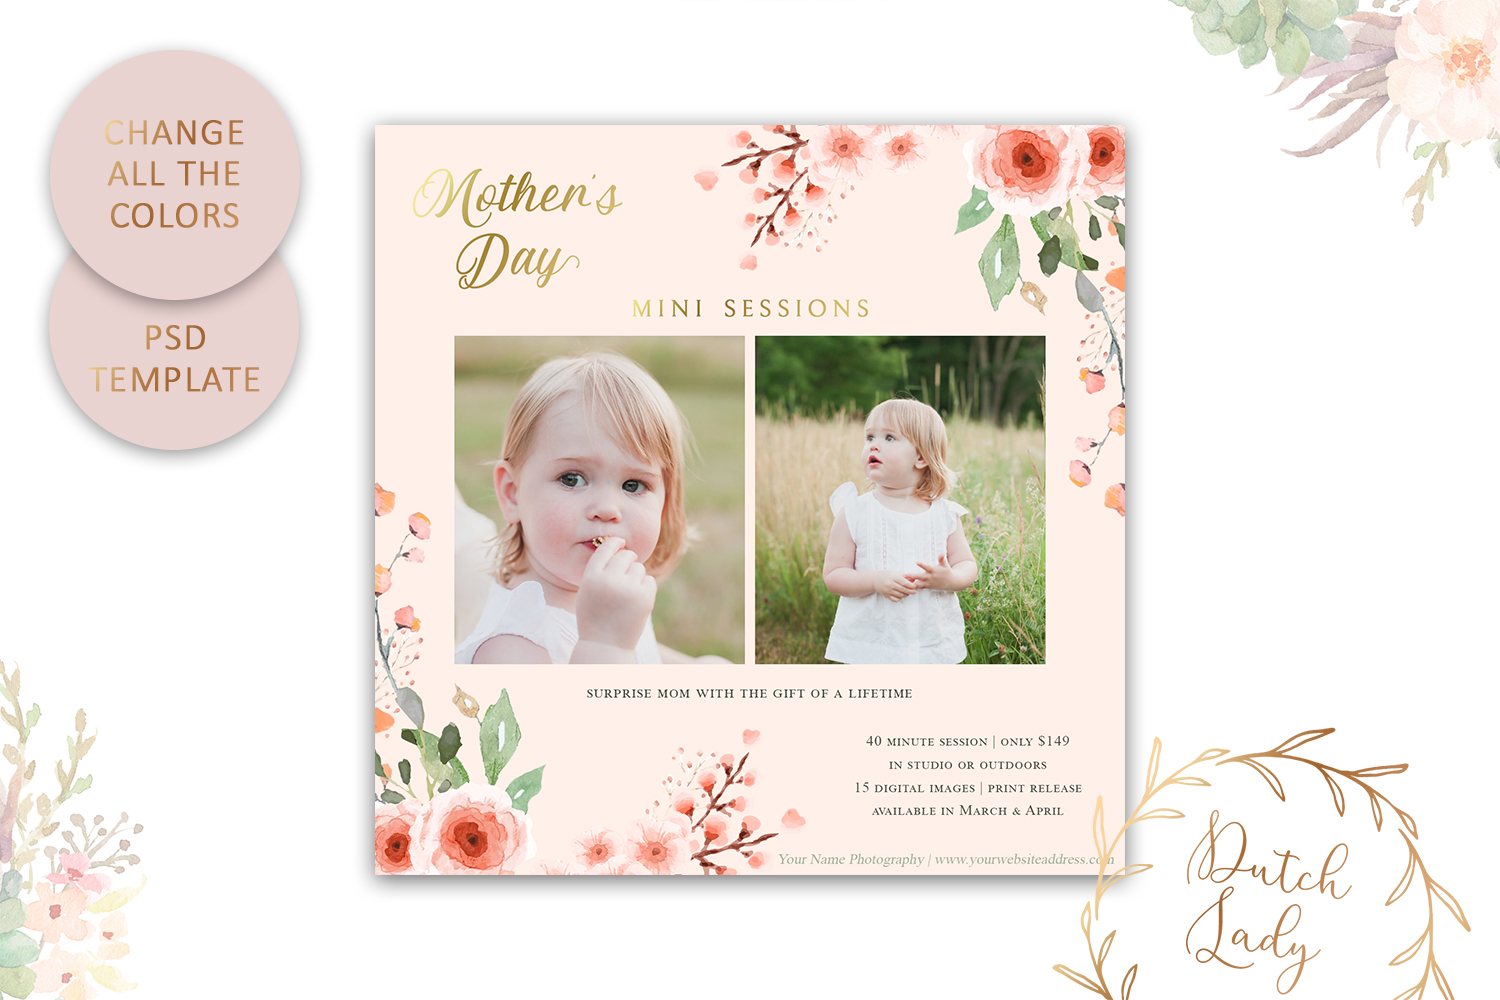 PSD Mother's Day Photo Session Card Template - Design #37 example image 3